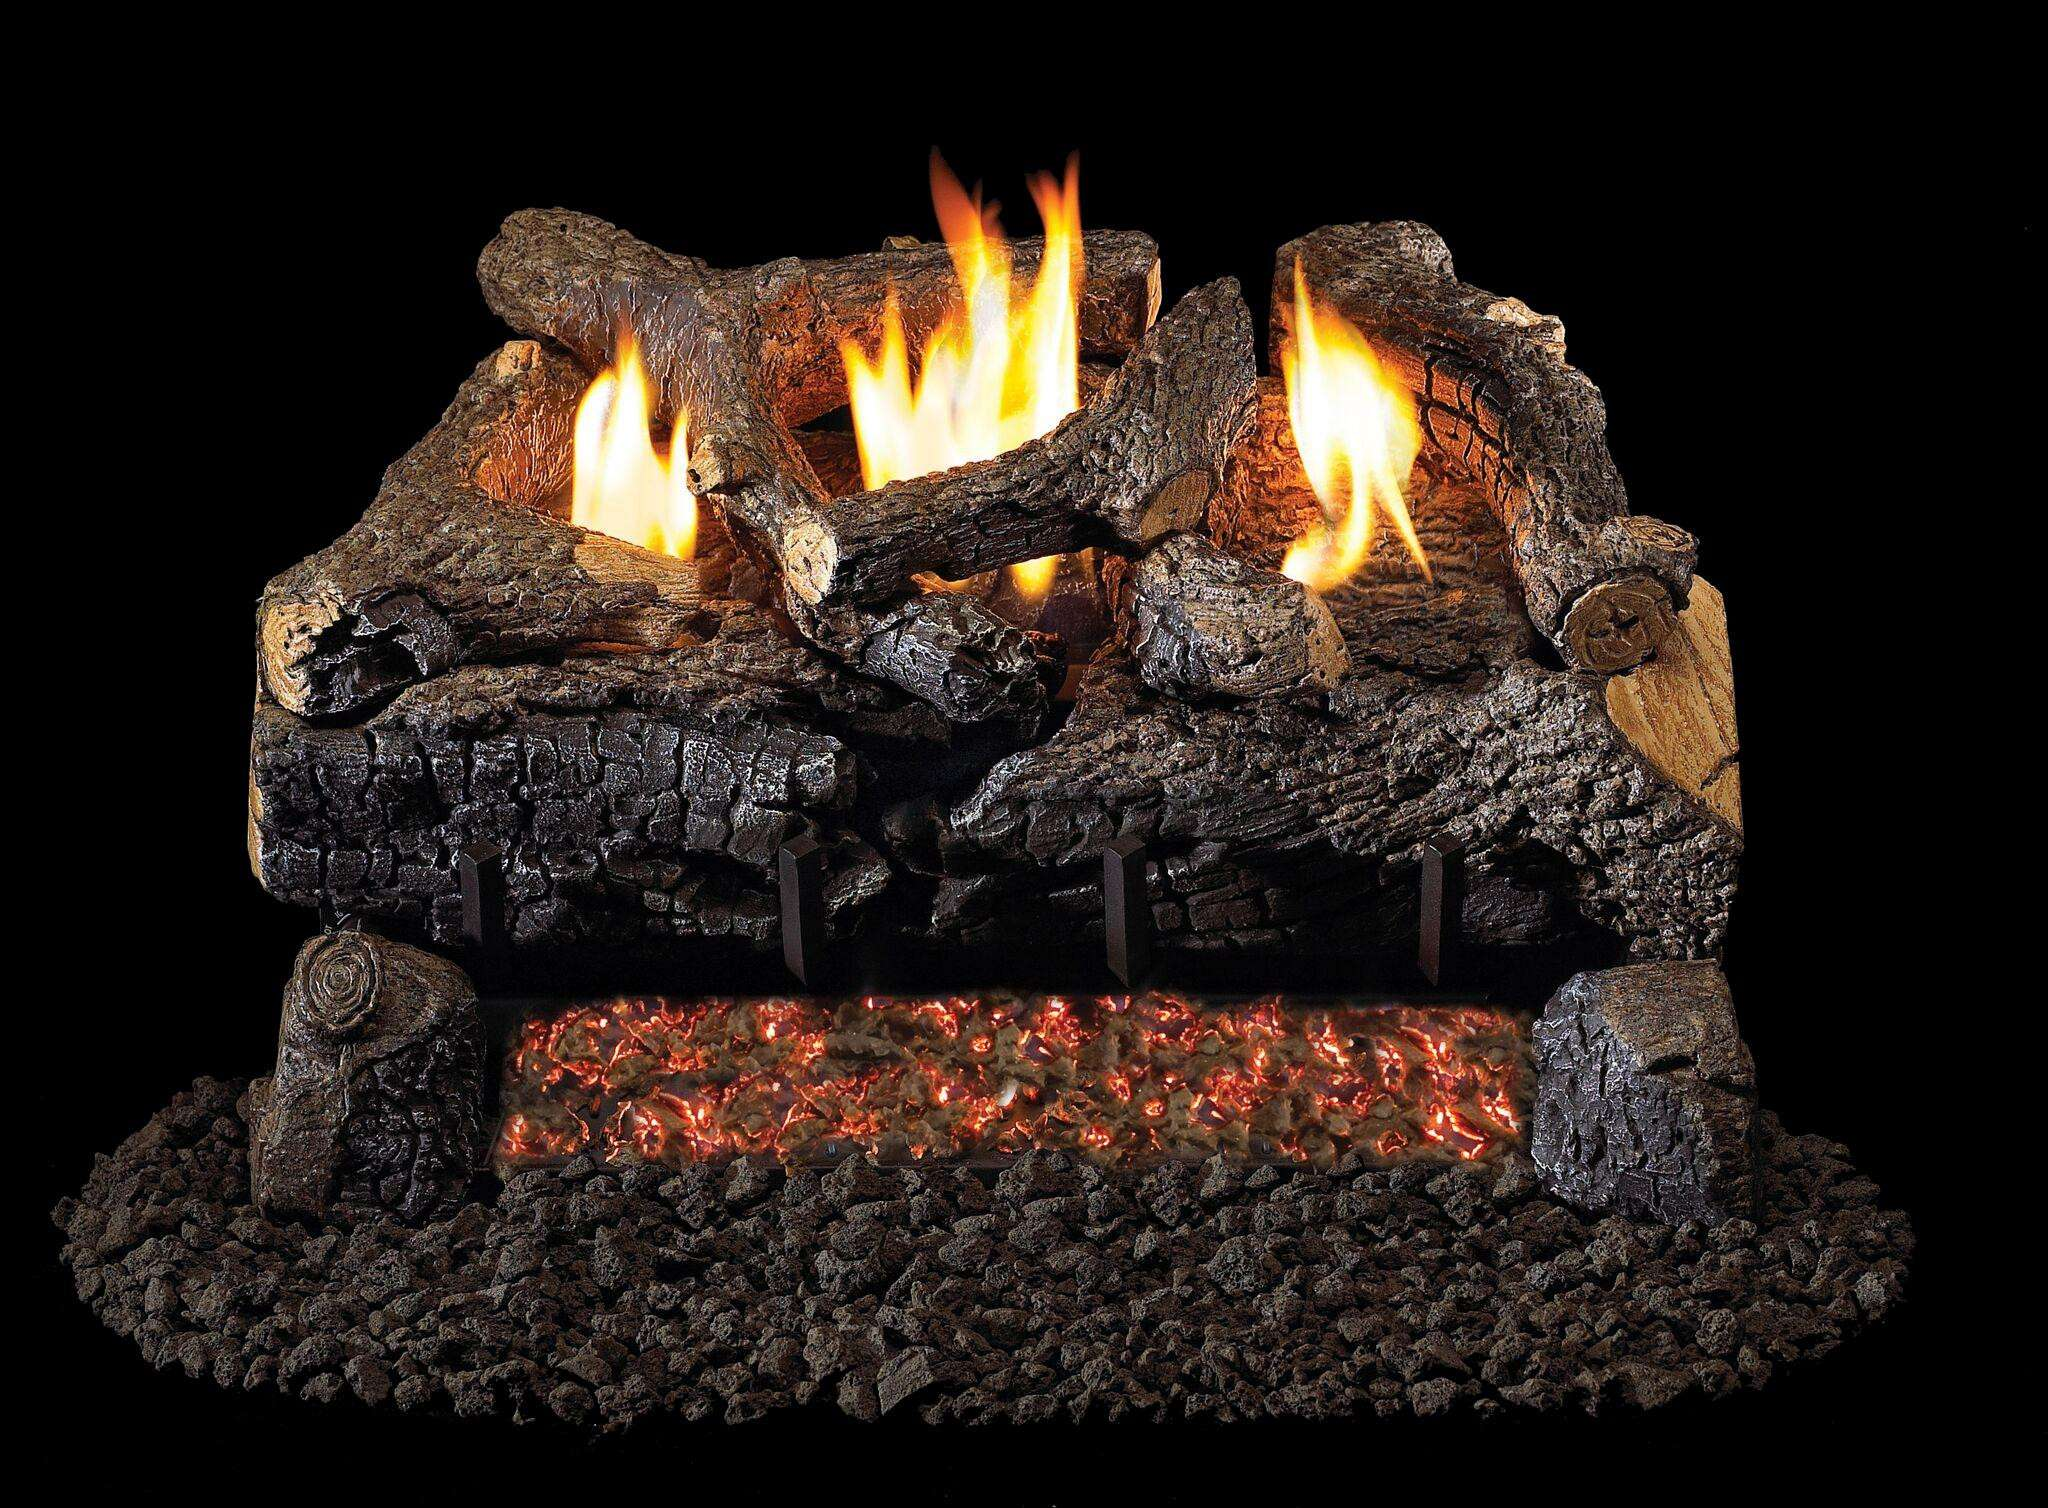 "R.H. Peterson ECV-2-24 SeeThru 24"" Ventless Evening Fyre Charred. Logs Only (does not include burner). For use with compatible R. H. Peterson vent-free gas log burner system in approved vent free fireplaces only!"